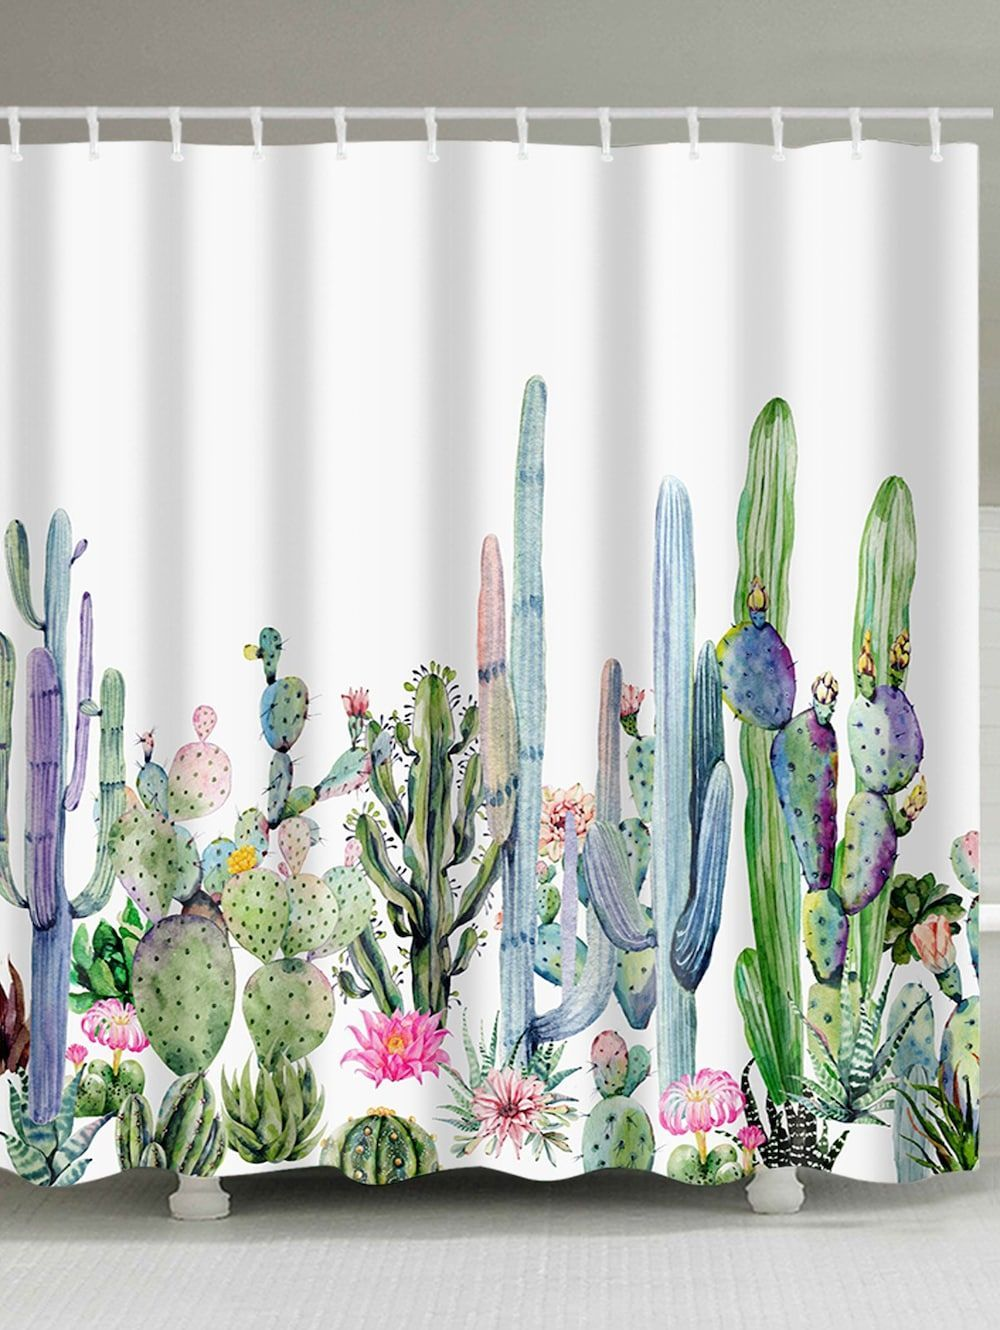 Green Plants Cactus Flowers Print Shower Curtain Multicolor W71